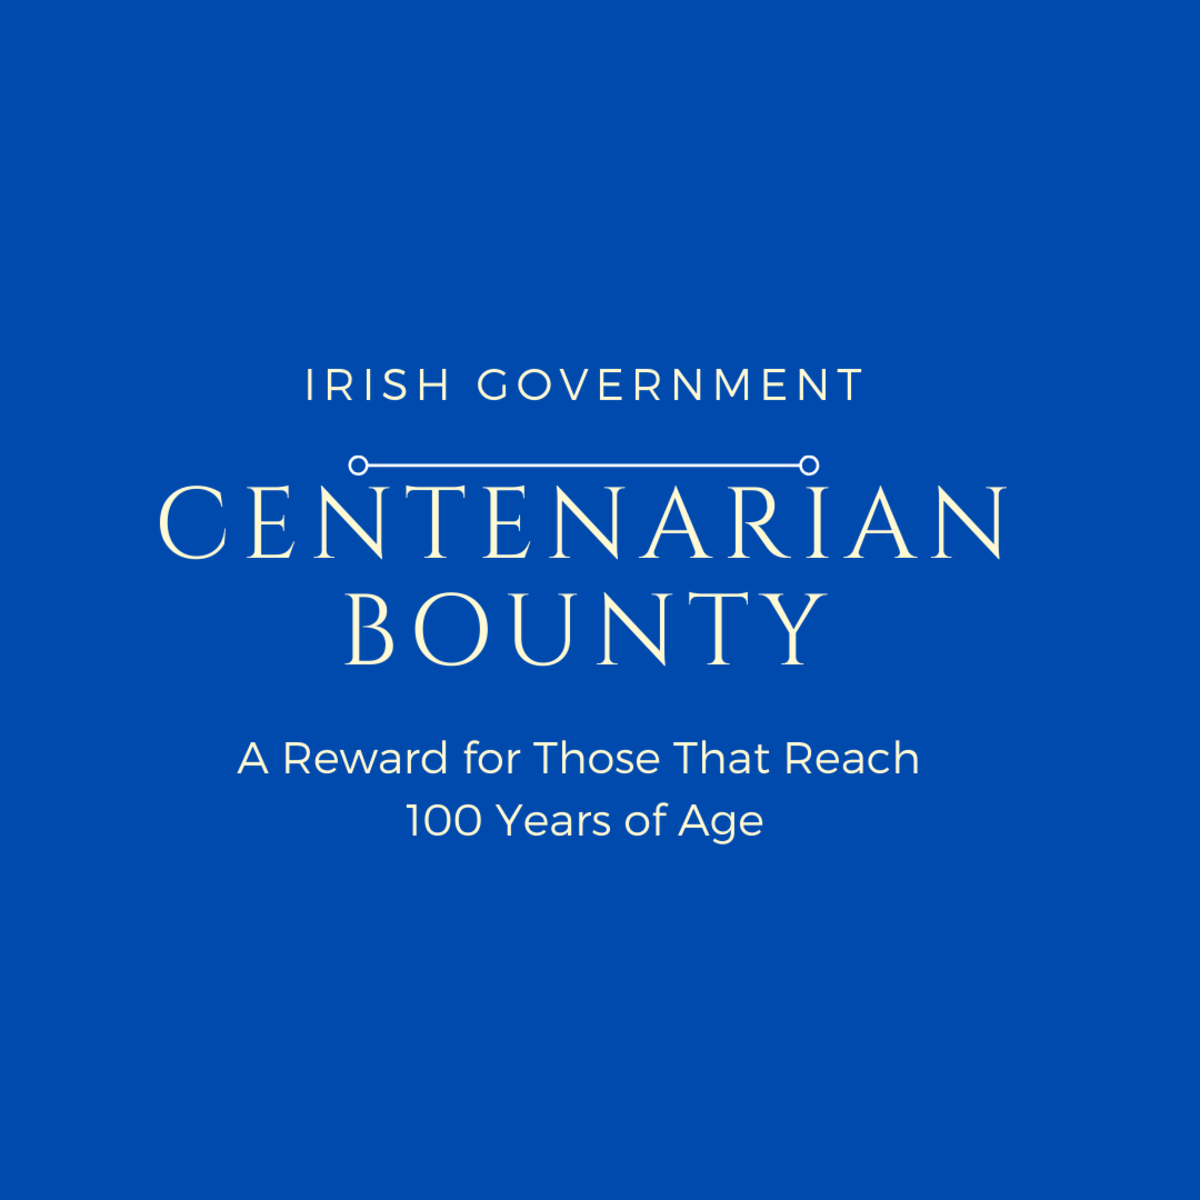 A Centenarian Bounty Is a Reward for Irish Citizens Who Reach 100 Years of Age